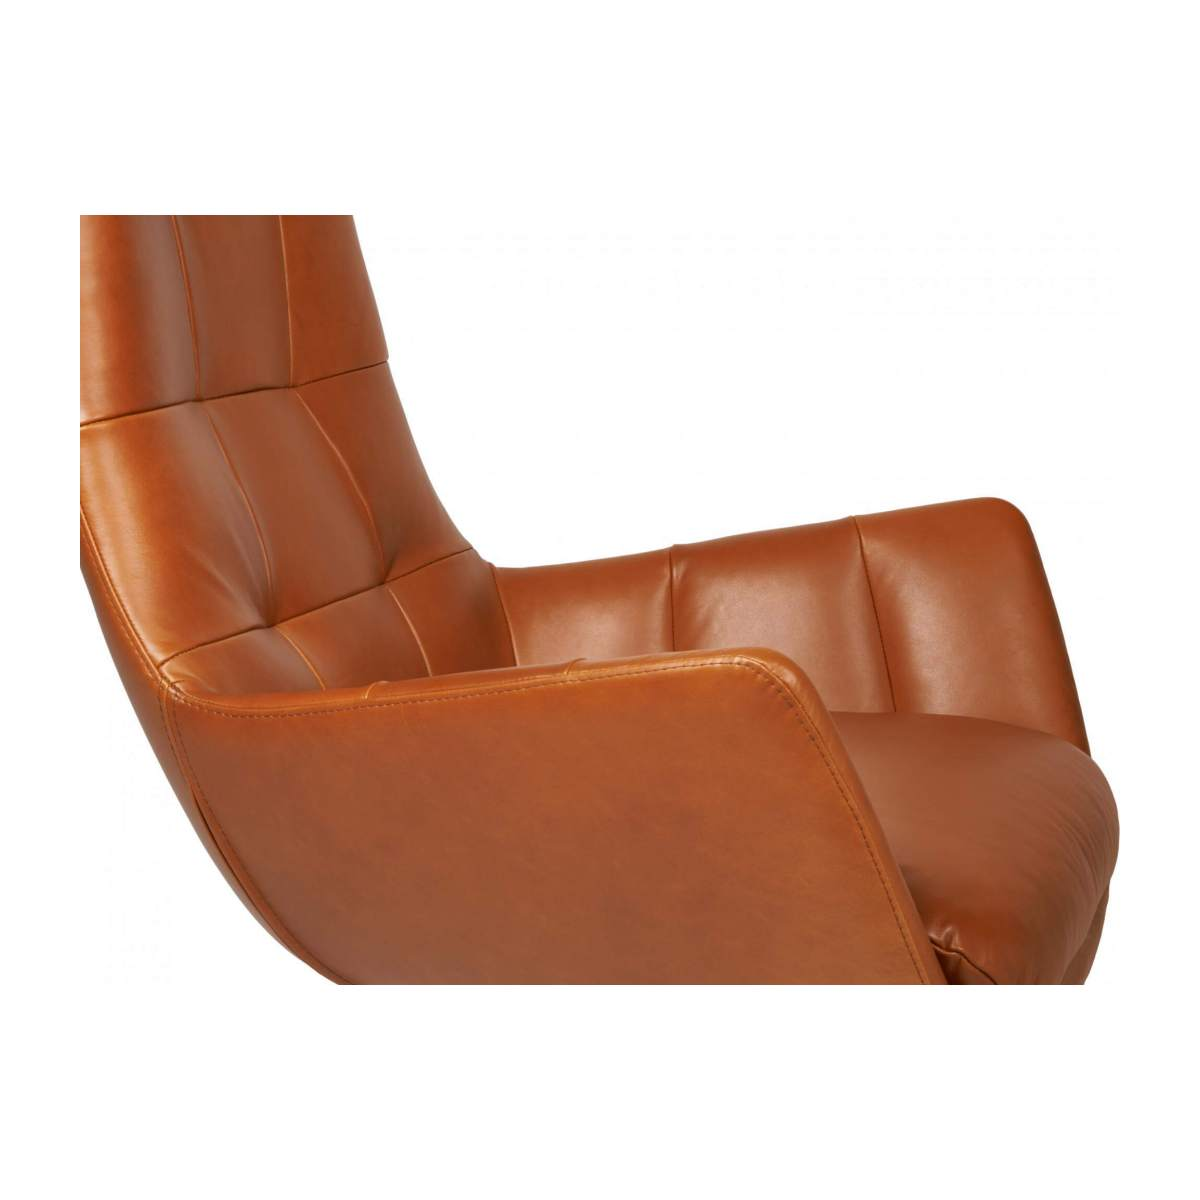 Armchair in Vintage aniline leather, old Chestnut with oak legs n°5